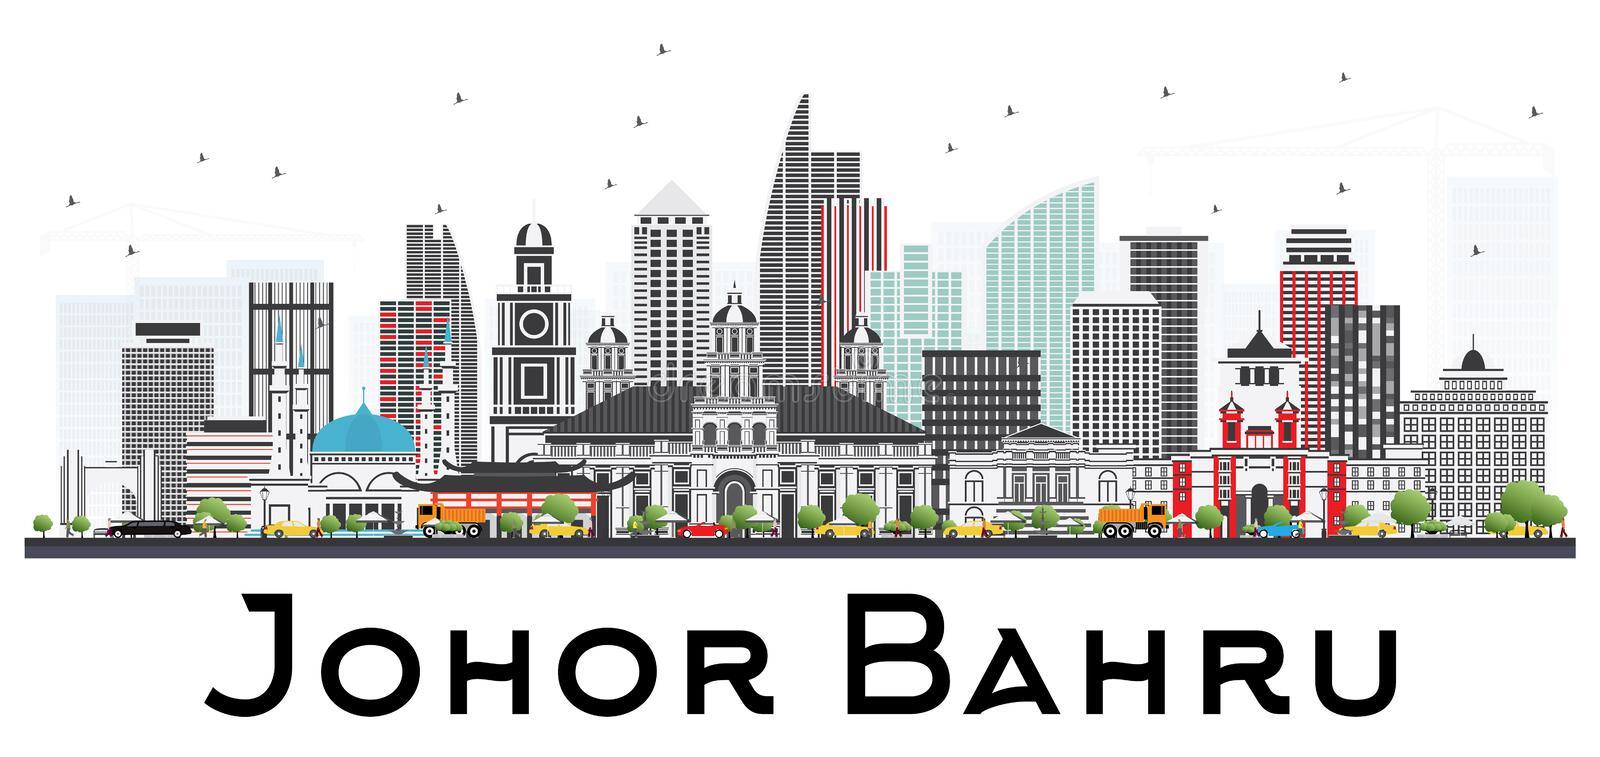 Johor Bahru Malaysia Skyline with Gray Buildings Isolated on White Background. Vector Illustration. Business Travel and Tourism Illustration with Modern royalty free illustration